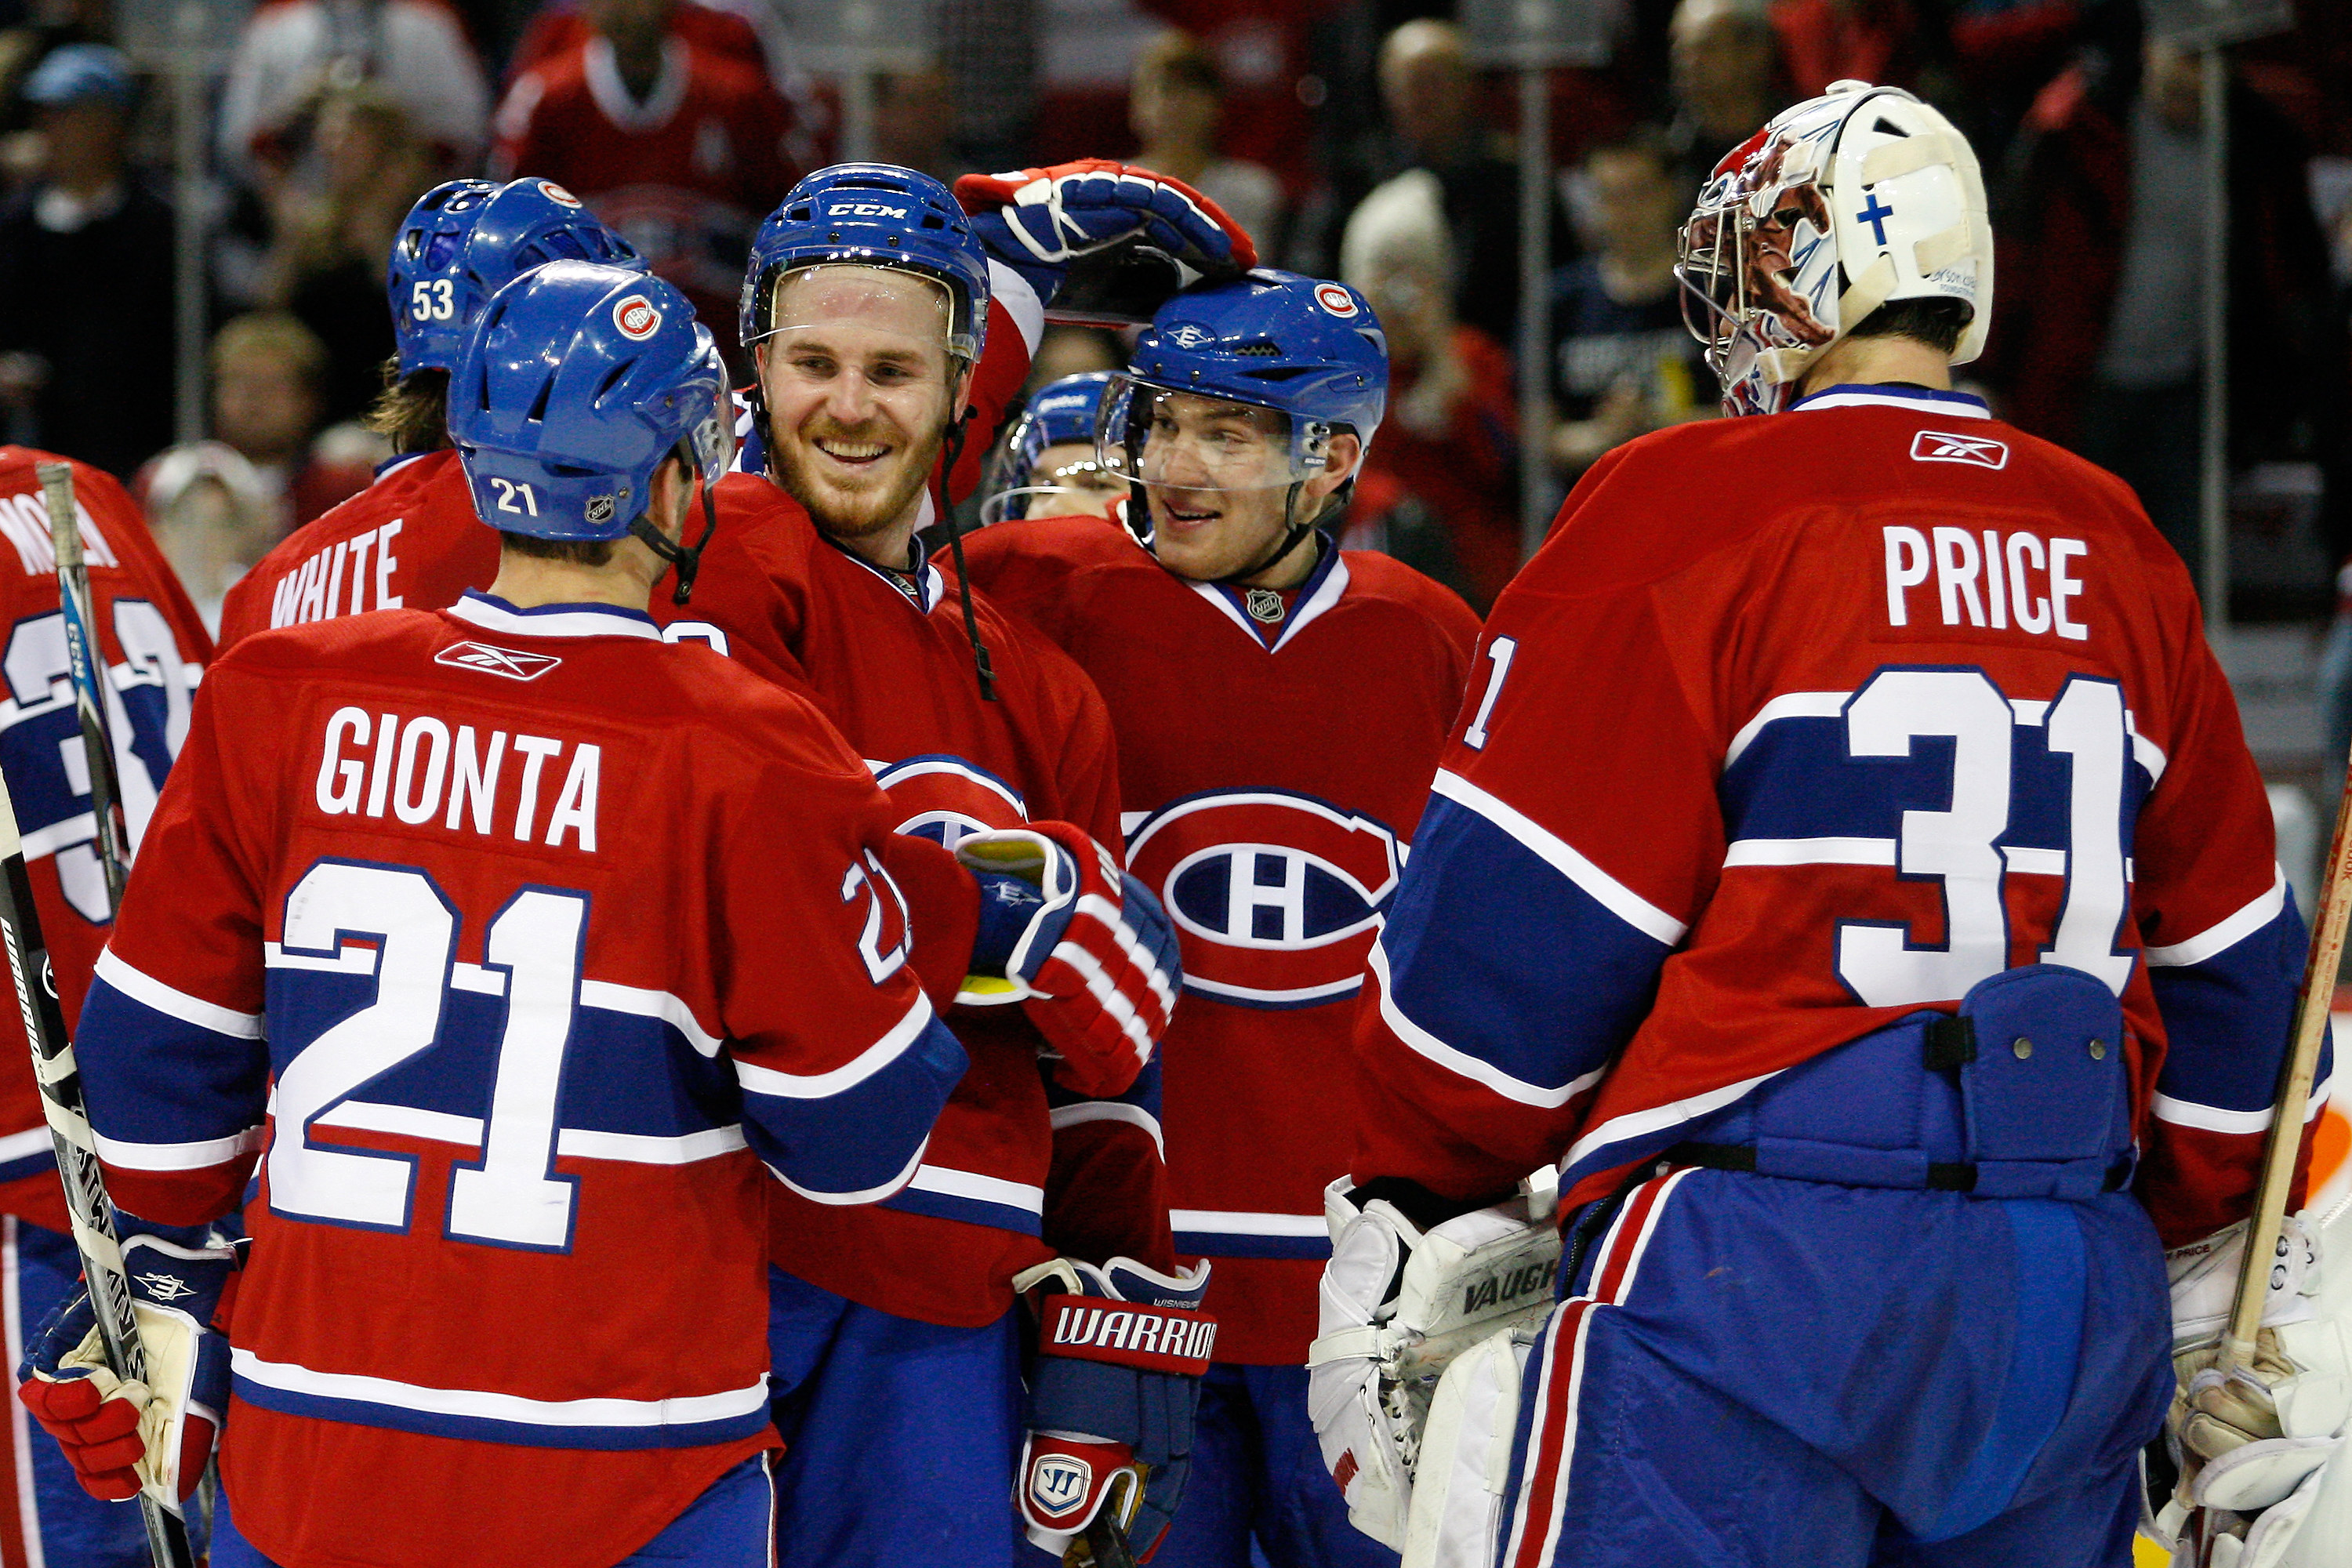 MONTREAL, CANADA - FEBRUARY 12:  Members of the Montreal Canadiens celebrate their 3-0 victory over the Toronto Maple Leafs during the NHL game at the Bell Centre on February 12, 2011 in Montreal, Quebec, Canada.  The Canadiens defeated the Maple Leafs 3-